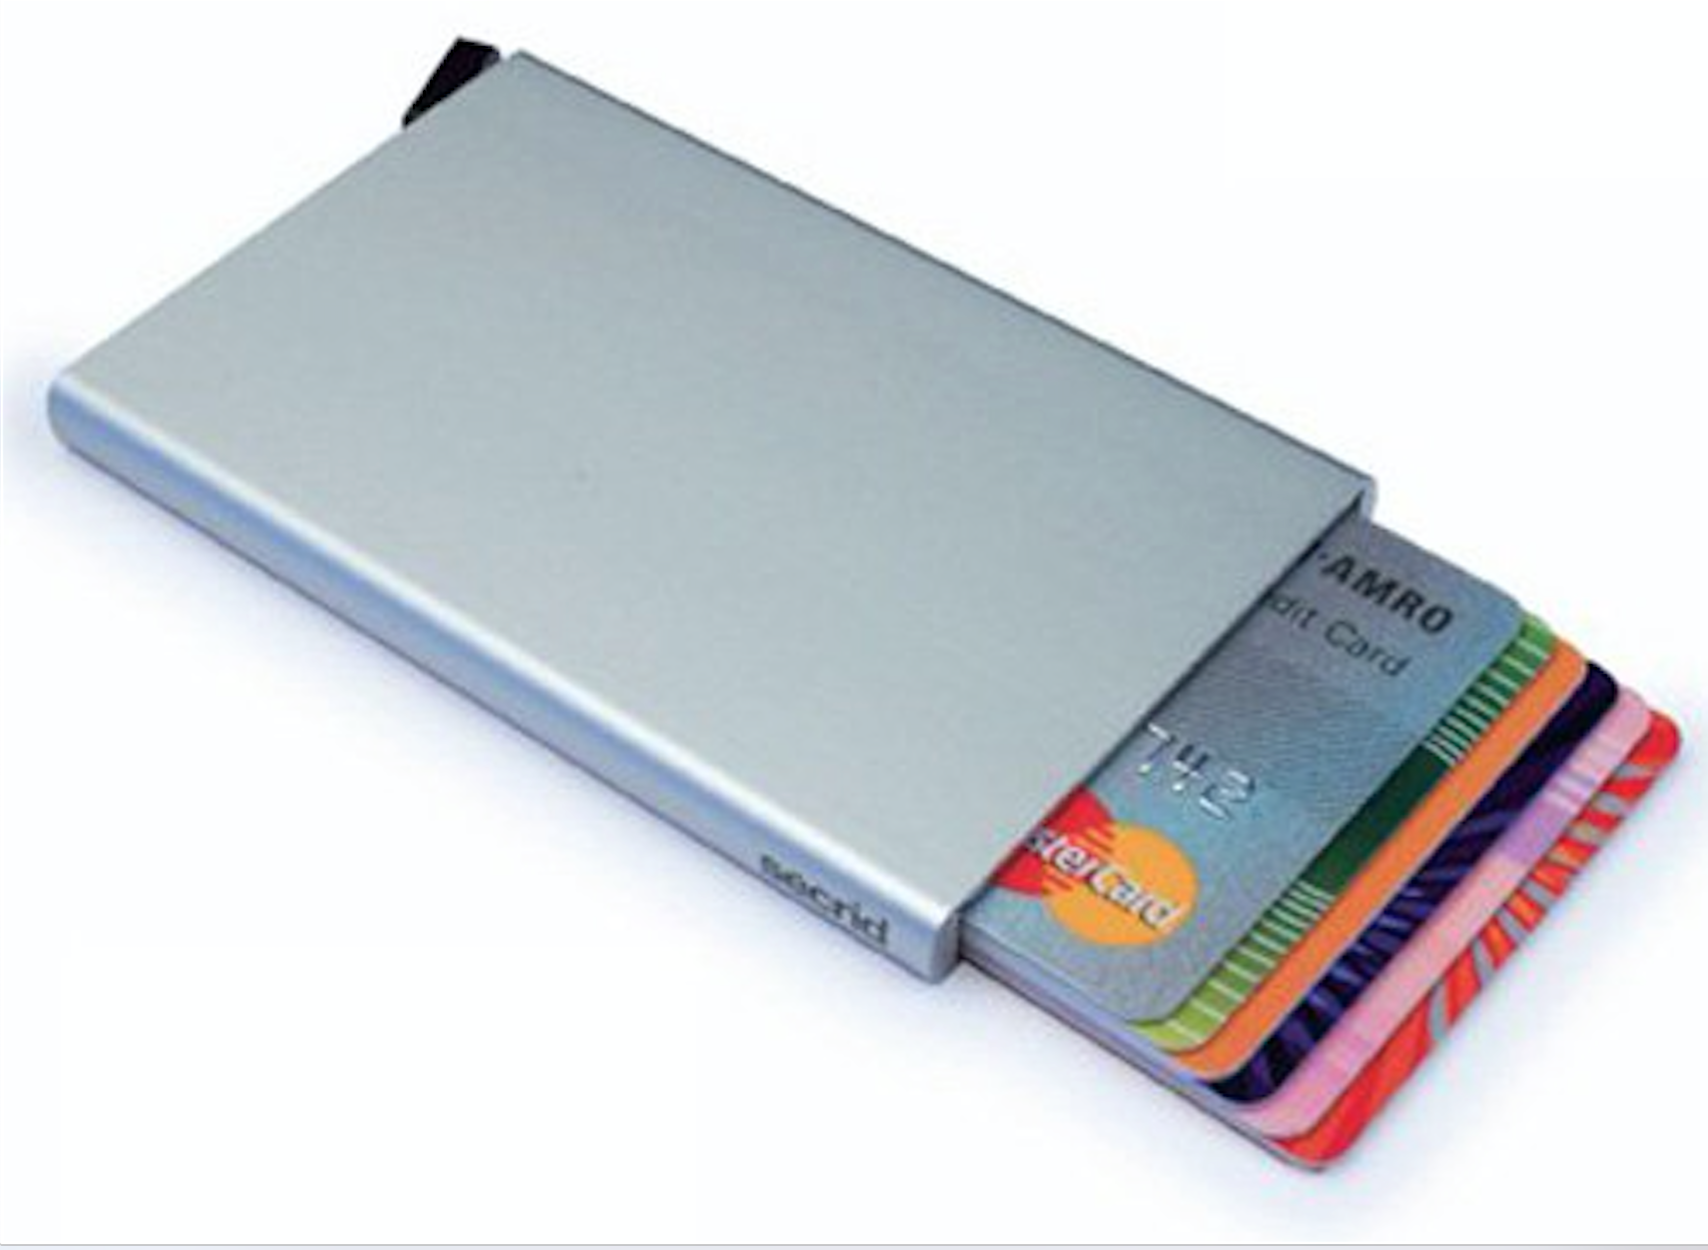 Slim card organizer and protector. Minimize your wallet. You can ...